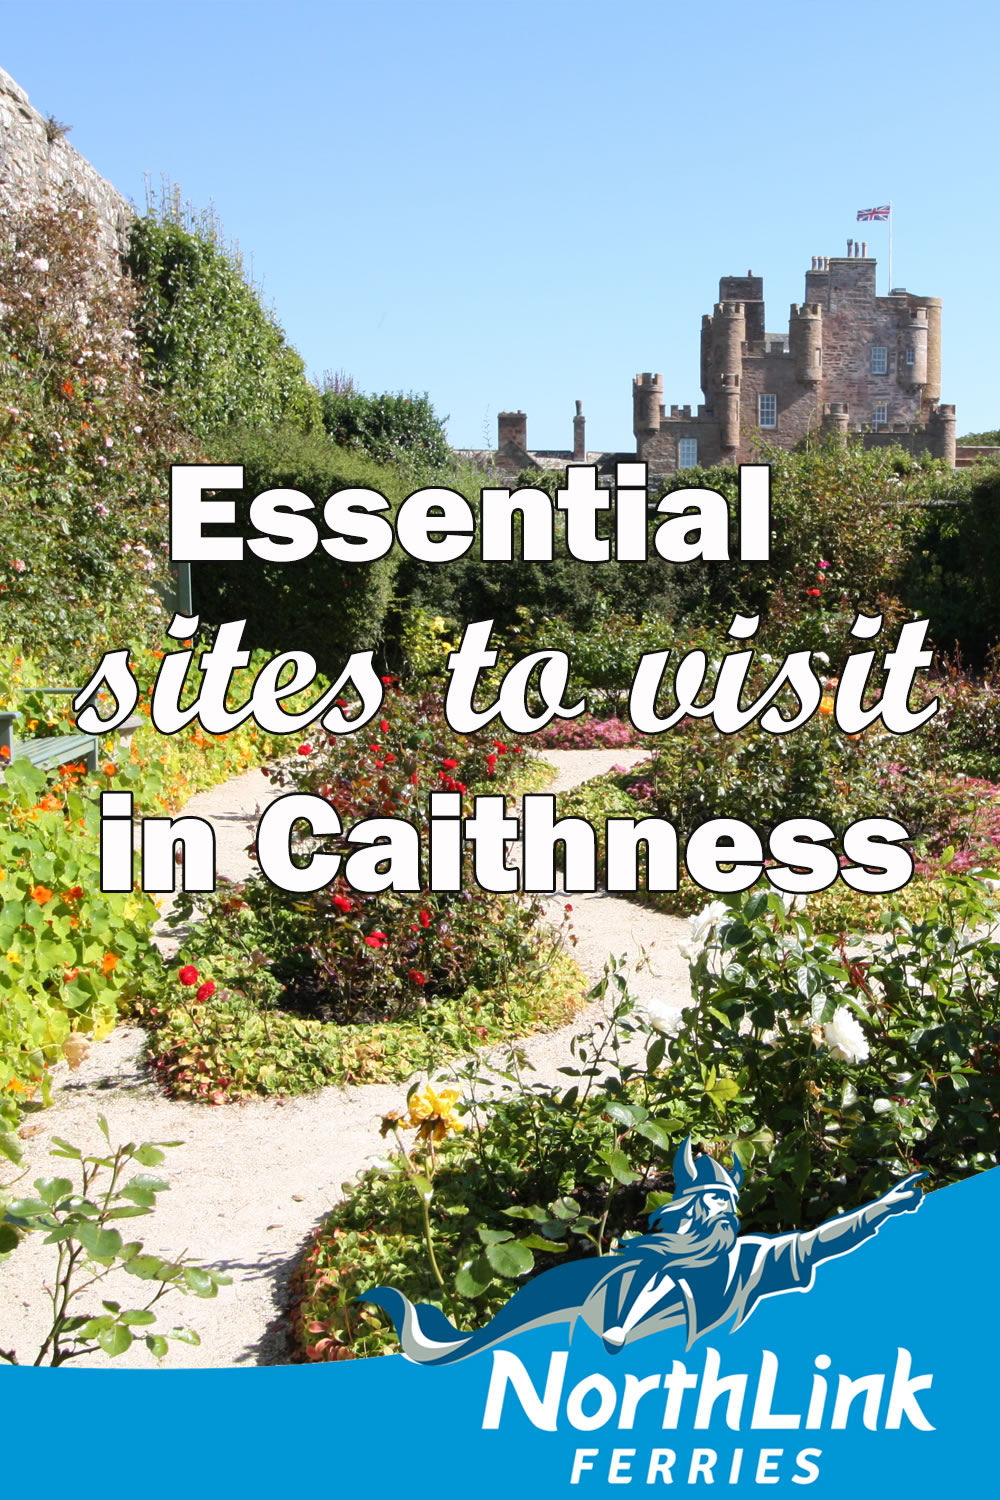 Essential sites to visit in Caithness